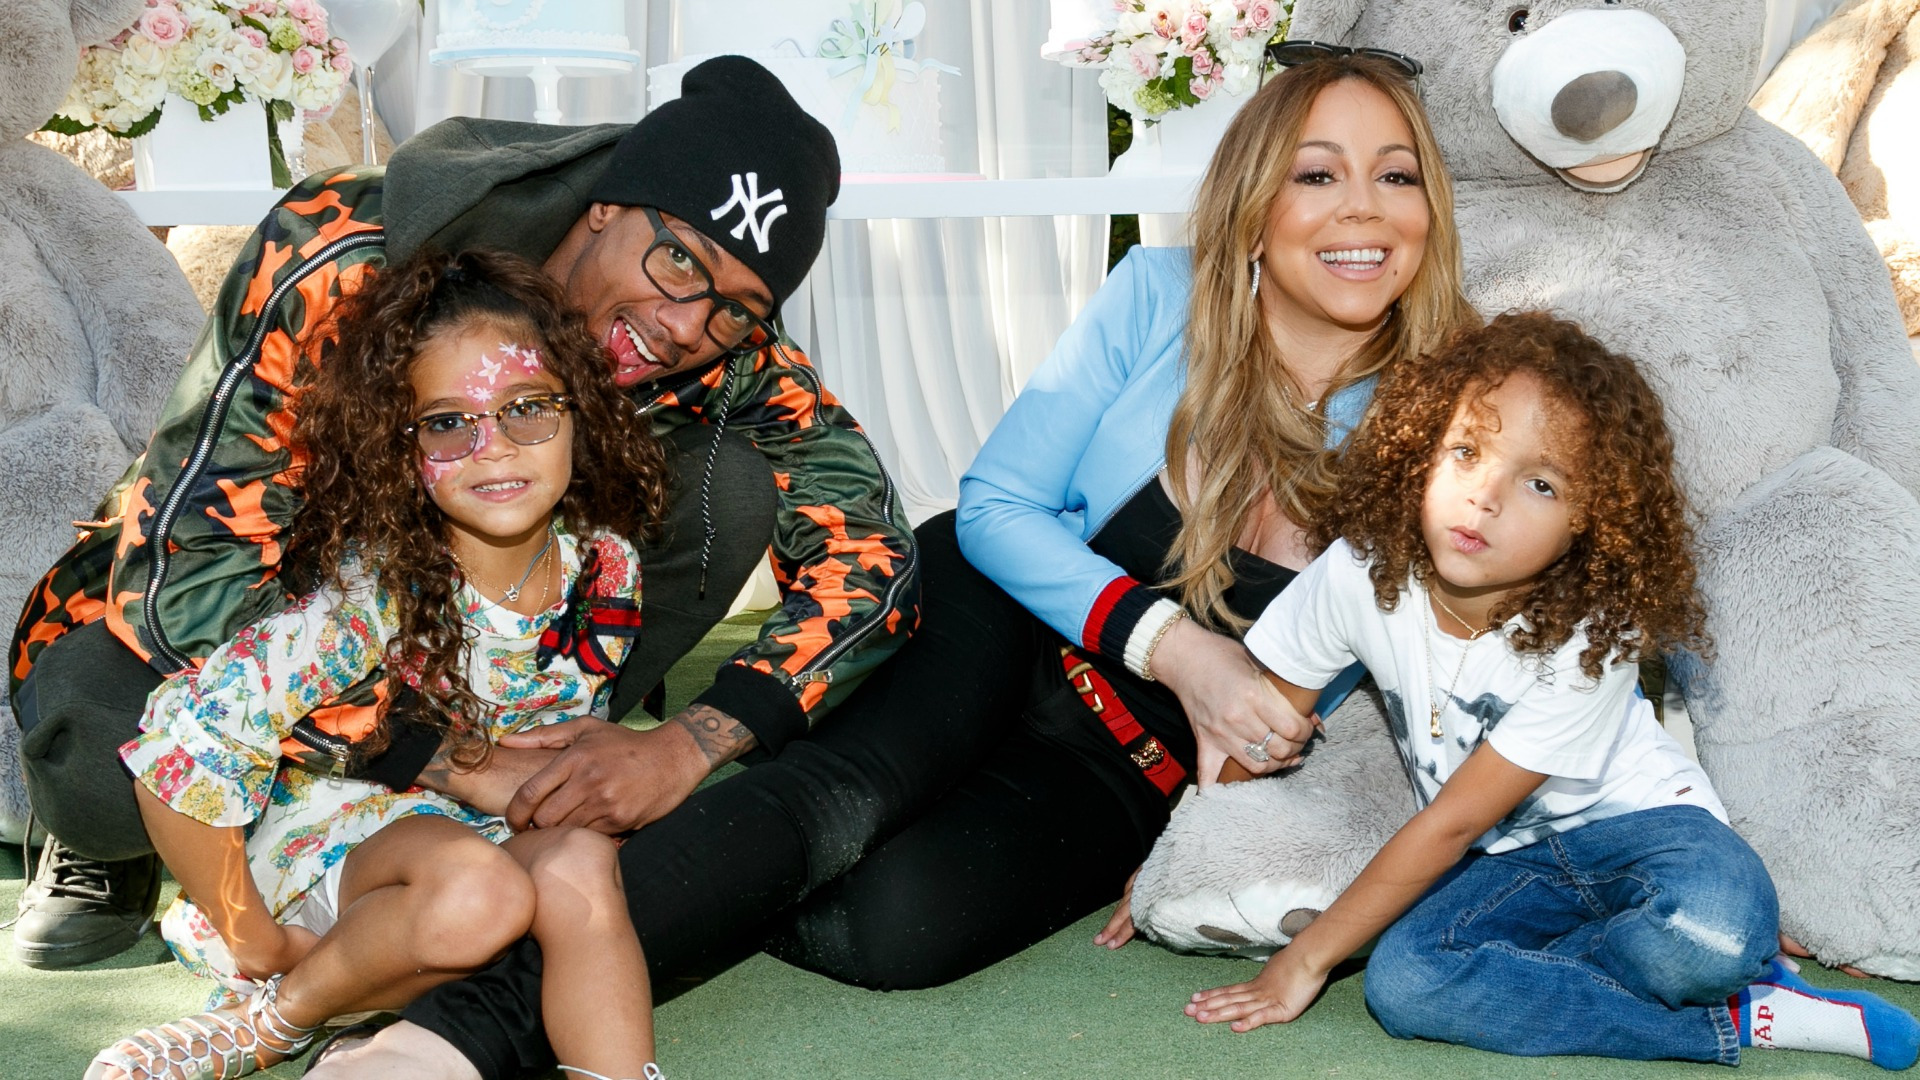 The Wild 'n' Out host is also father to 10-year-old twins, Son Moroccan and daughter Monroes, with ex-wife Mariah Carey who he was married to from 2008-2016.